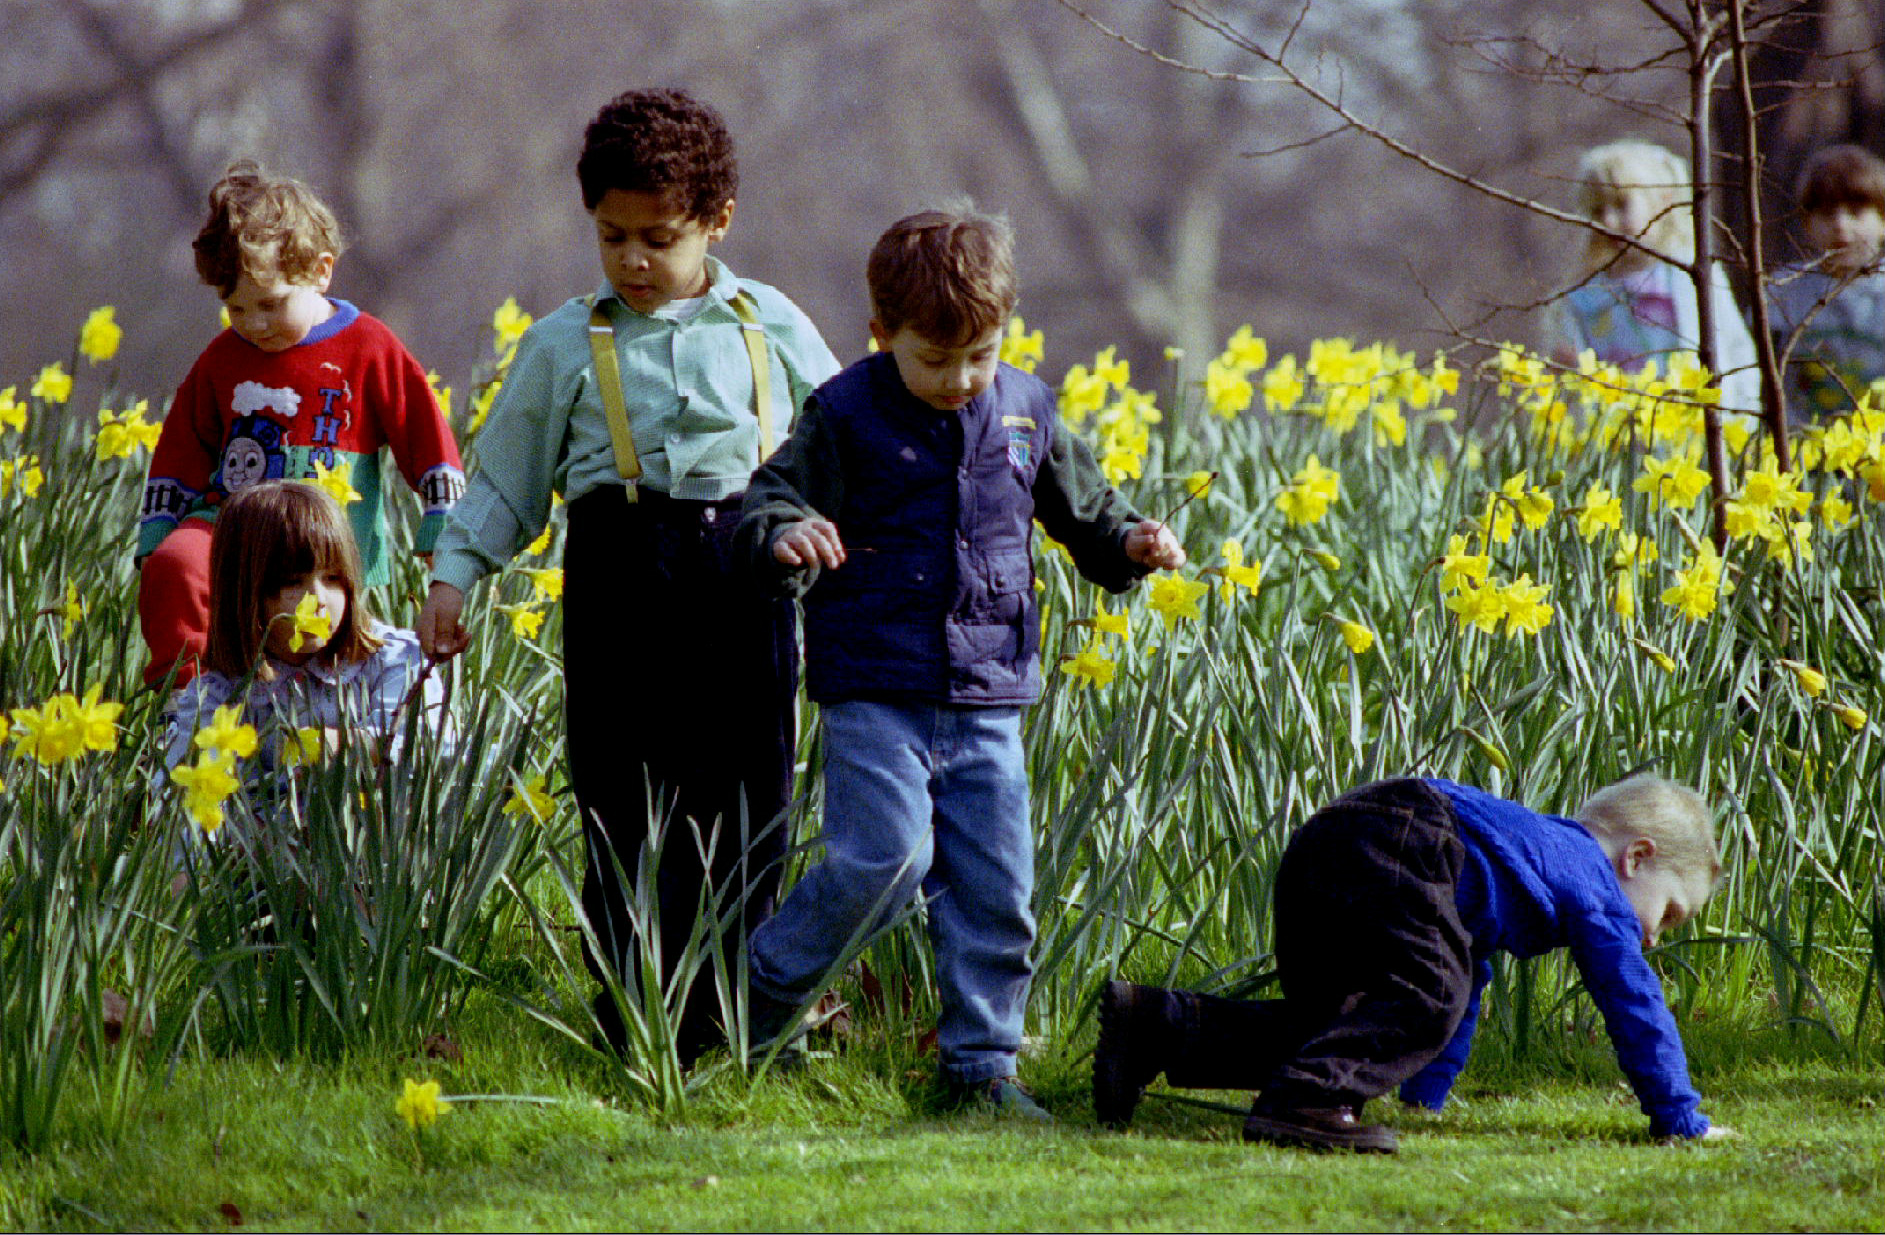 Nursery school children explore Hyde Park on one of the first warm days of Spring in London March 12. Daffodils responded by opening in the sun and basking in the unseasonal 15 degrees Centigrade temperature - RTXF26E